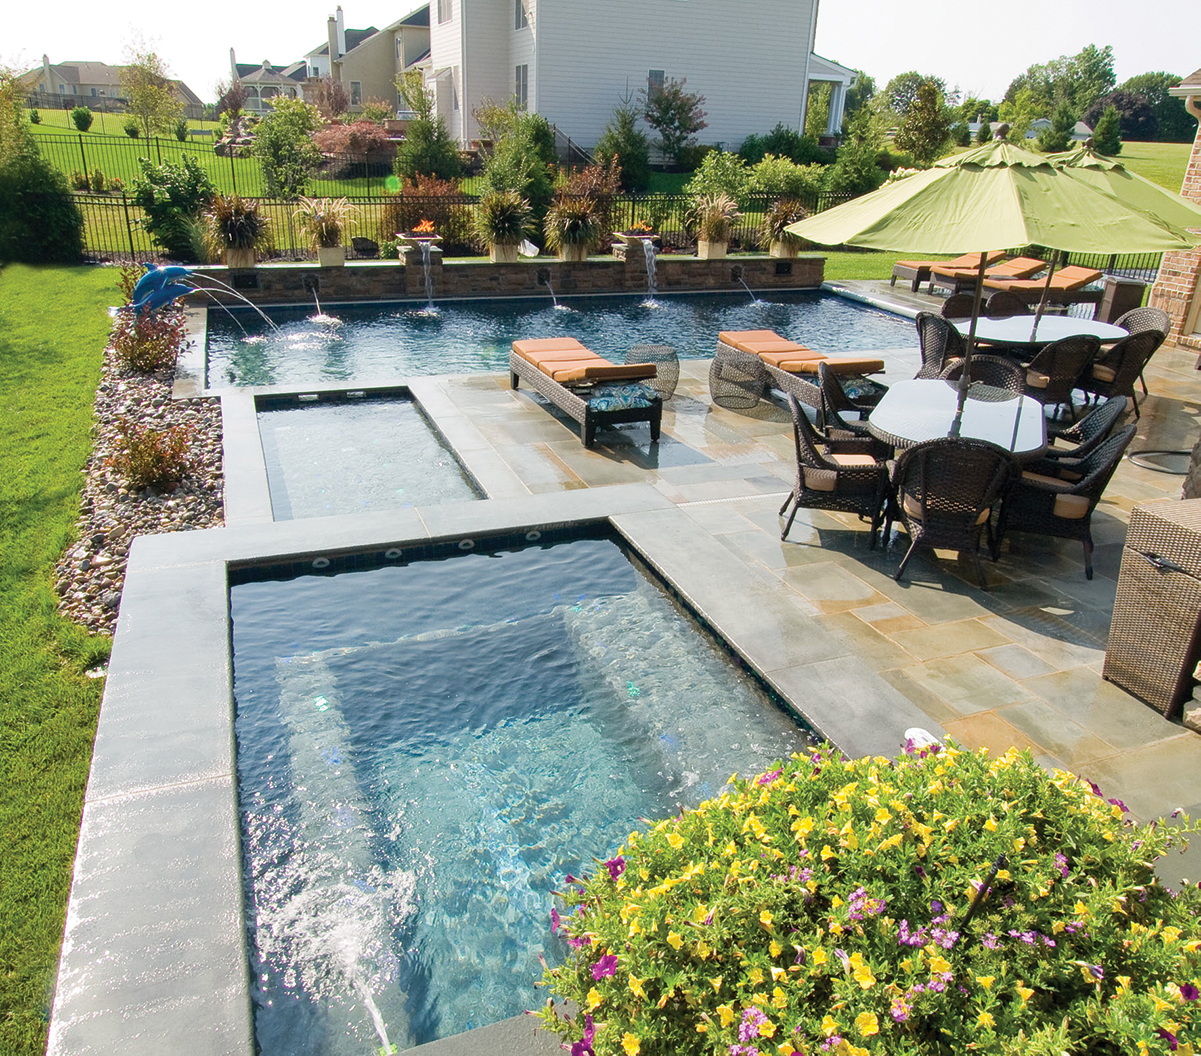 Ted's Pools – The Year of the Swimming Pool